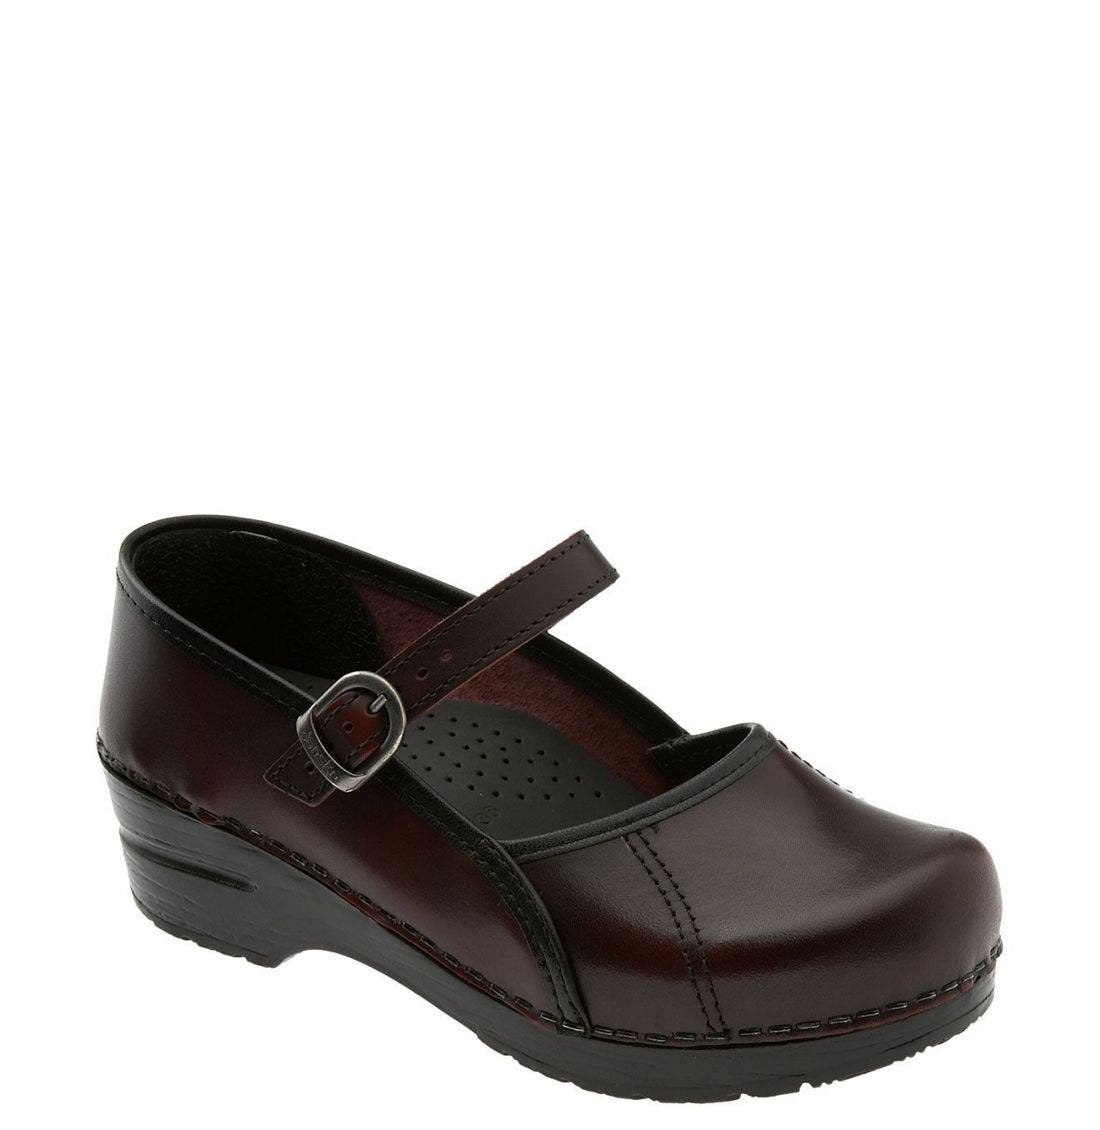 Dansko 'Marcelle' Mary Jane